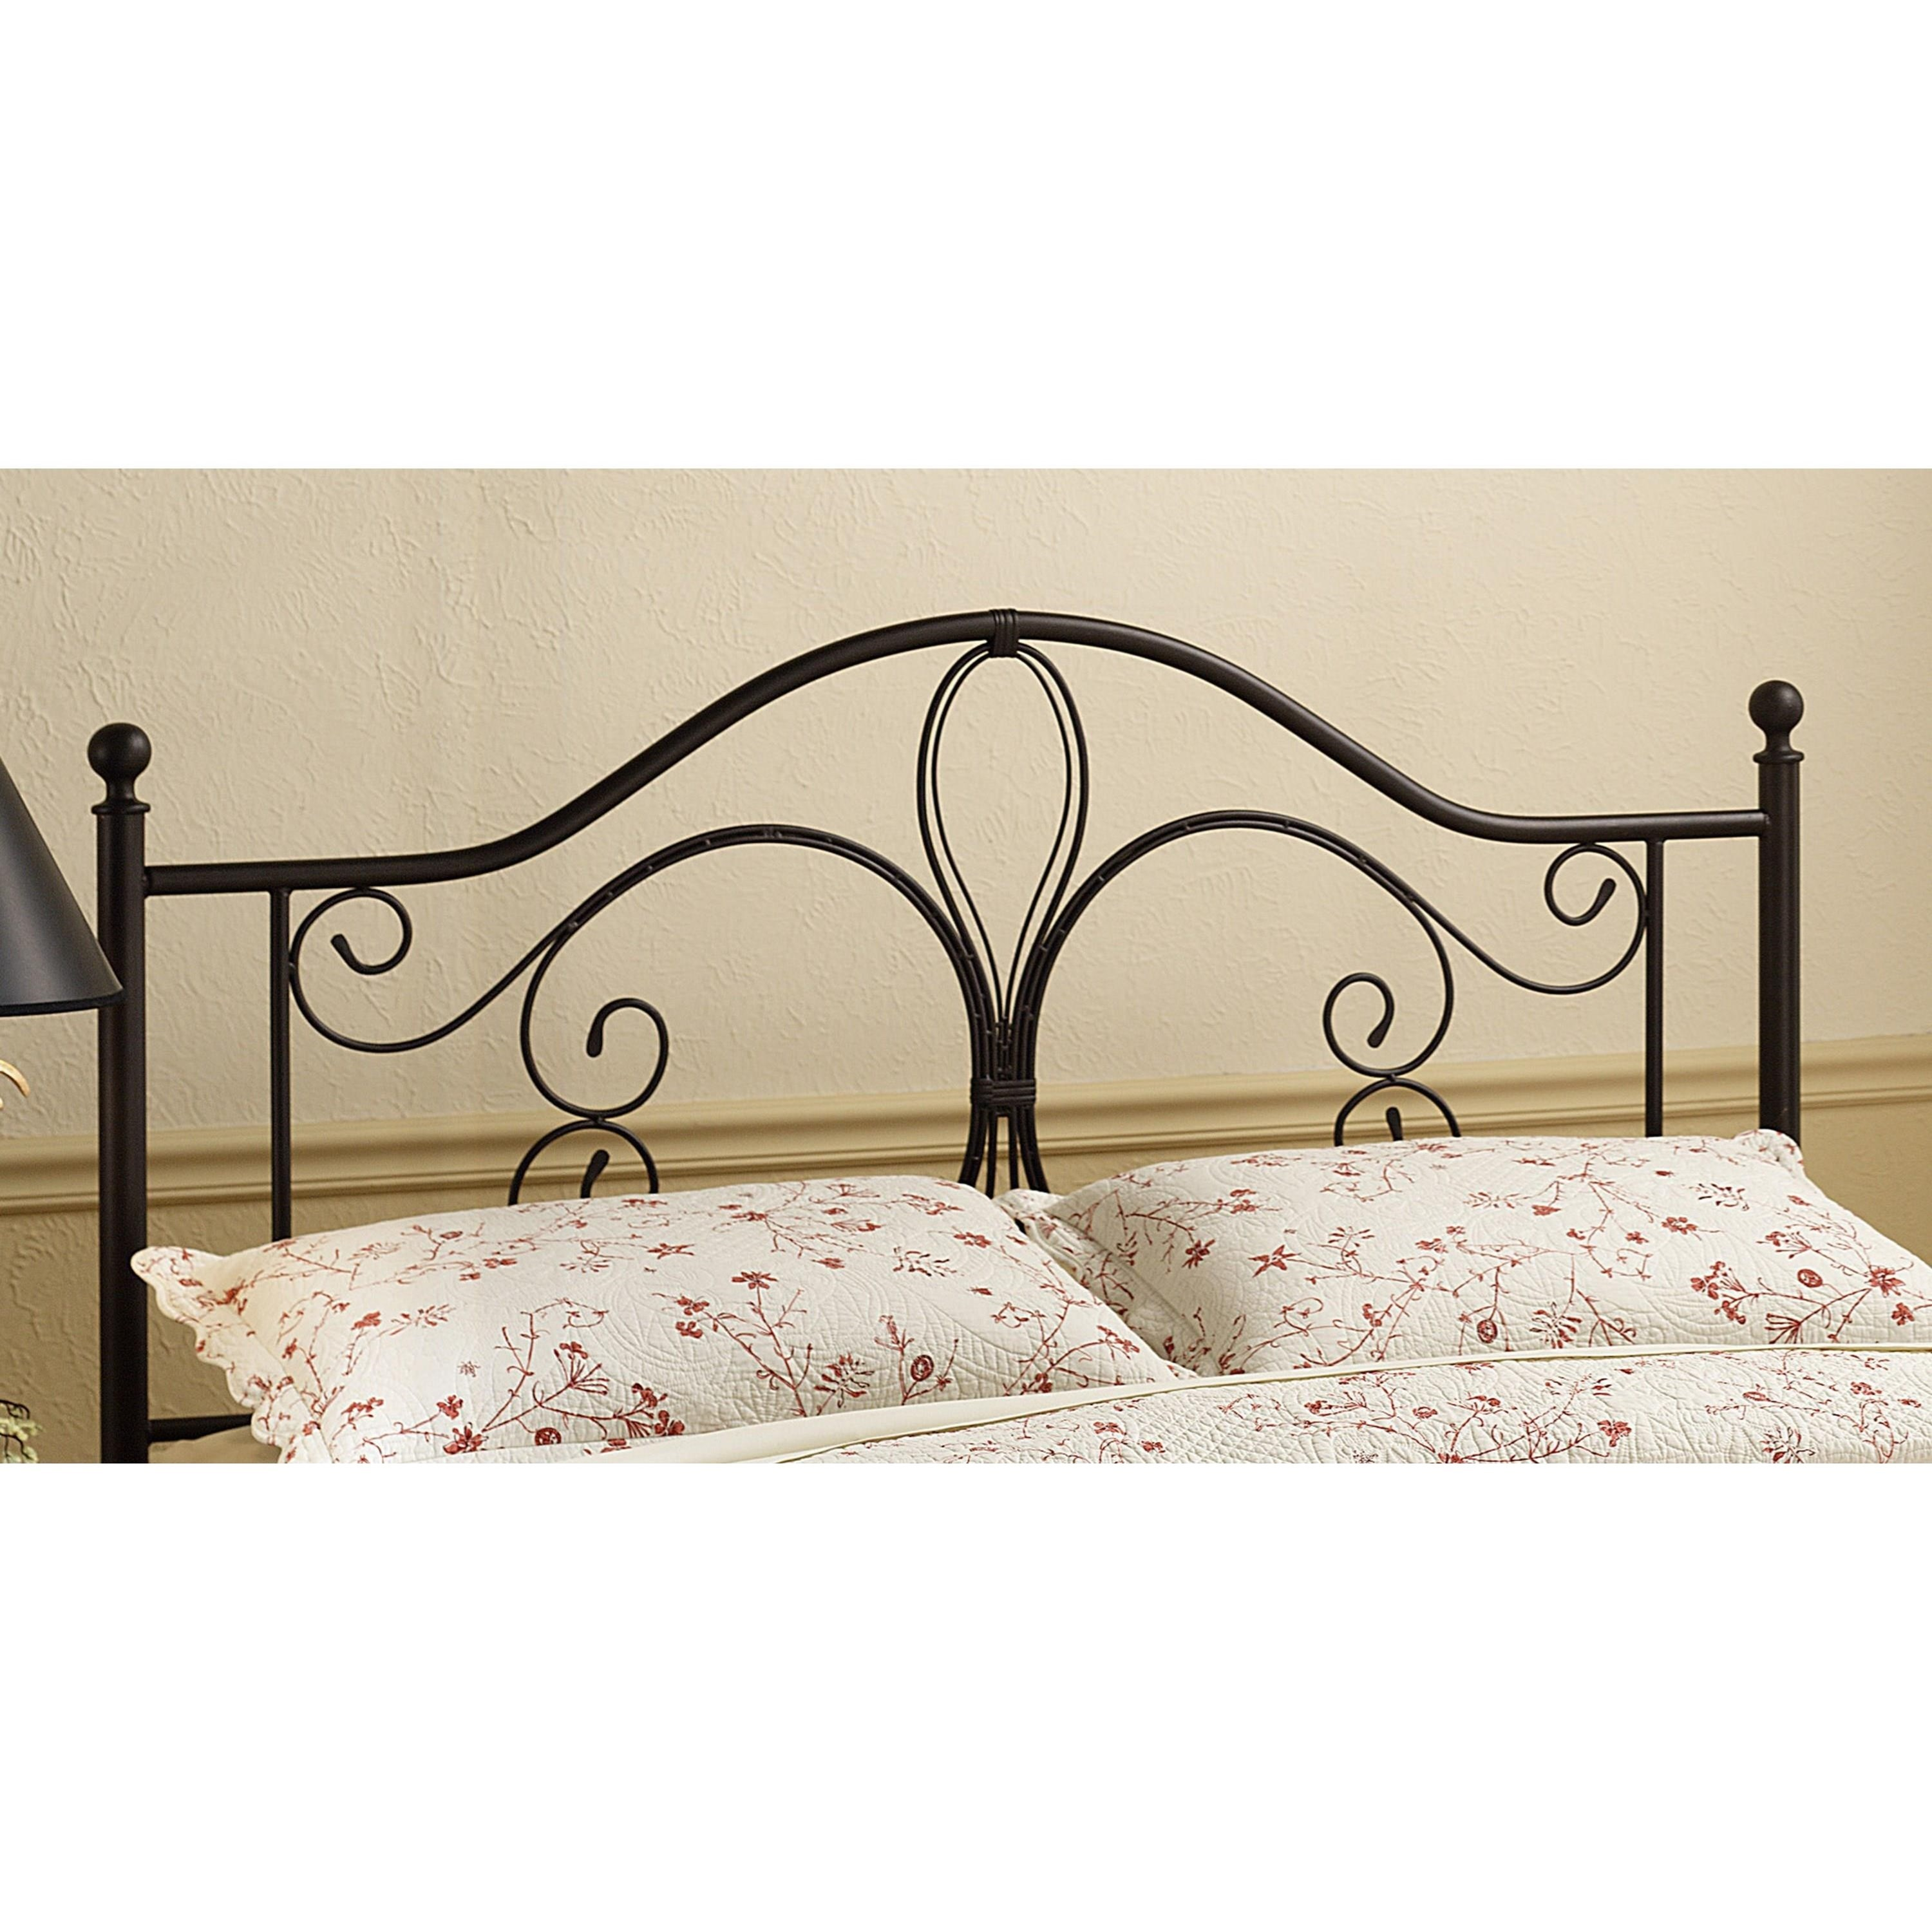 Metal Beds Full/Queen Milwaukee Headboard by Hillsdale at Gill Brothers Furniture